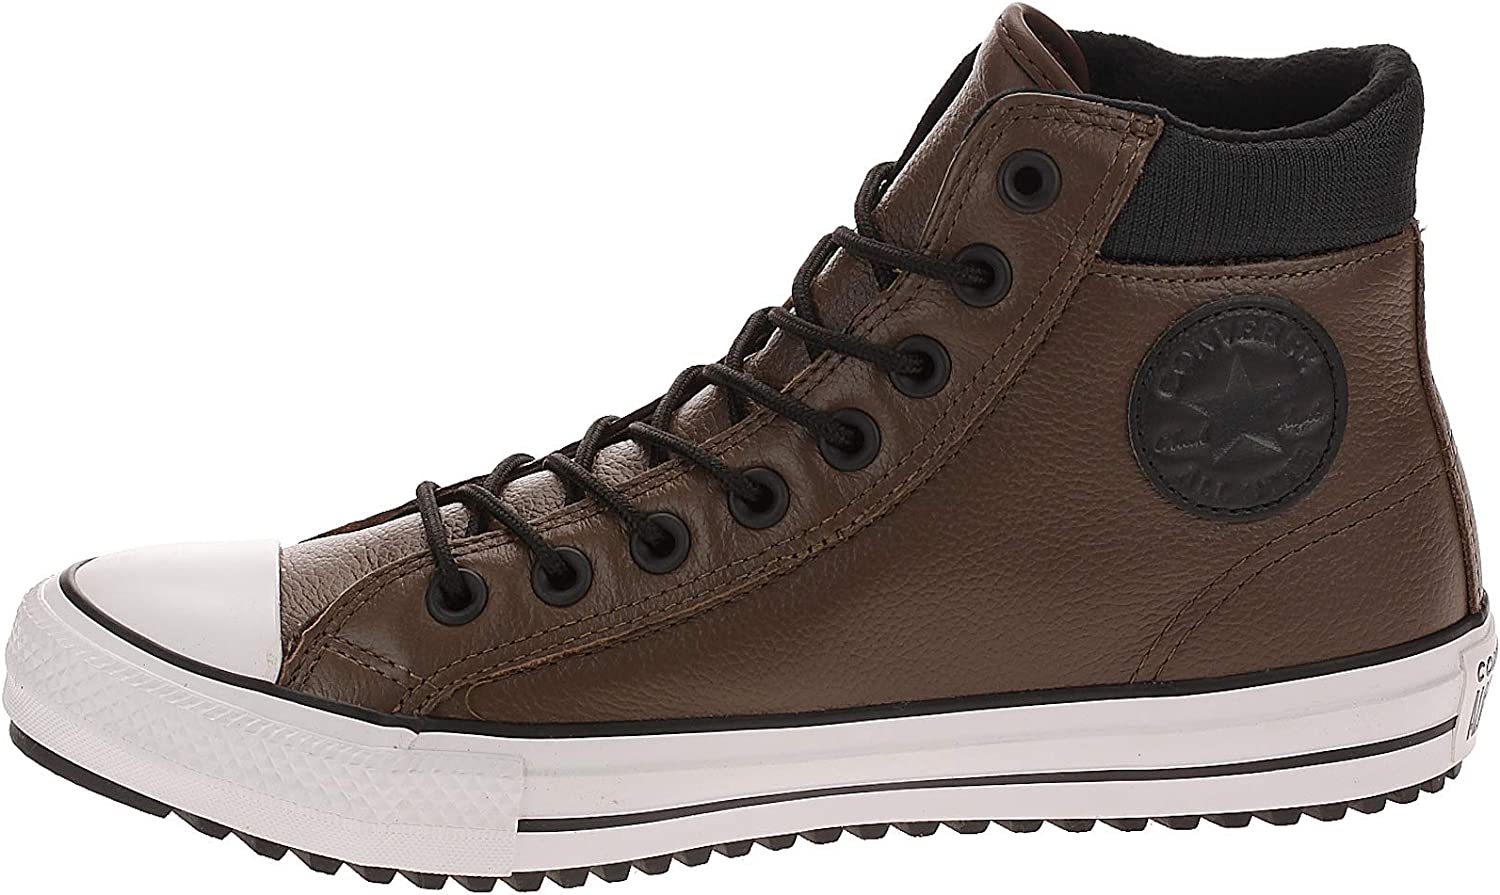 CT All Star Hi PC Leather Boots, Brown